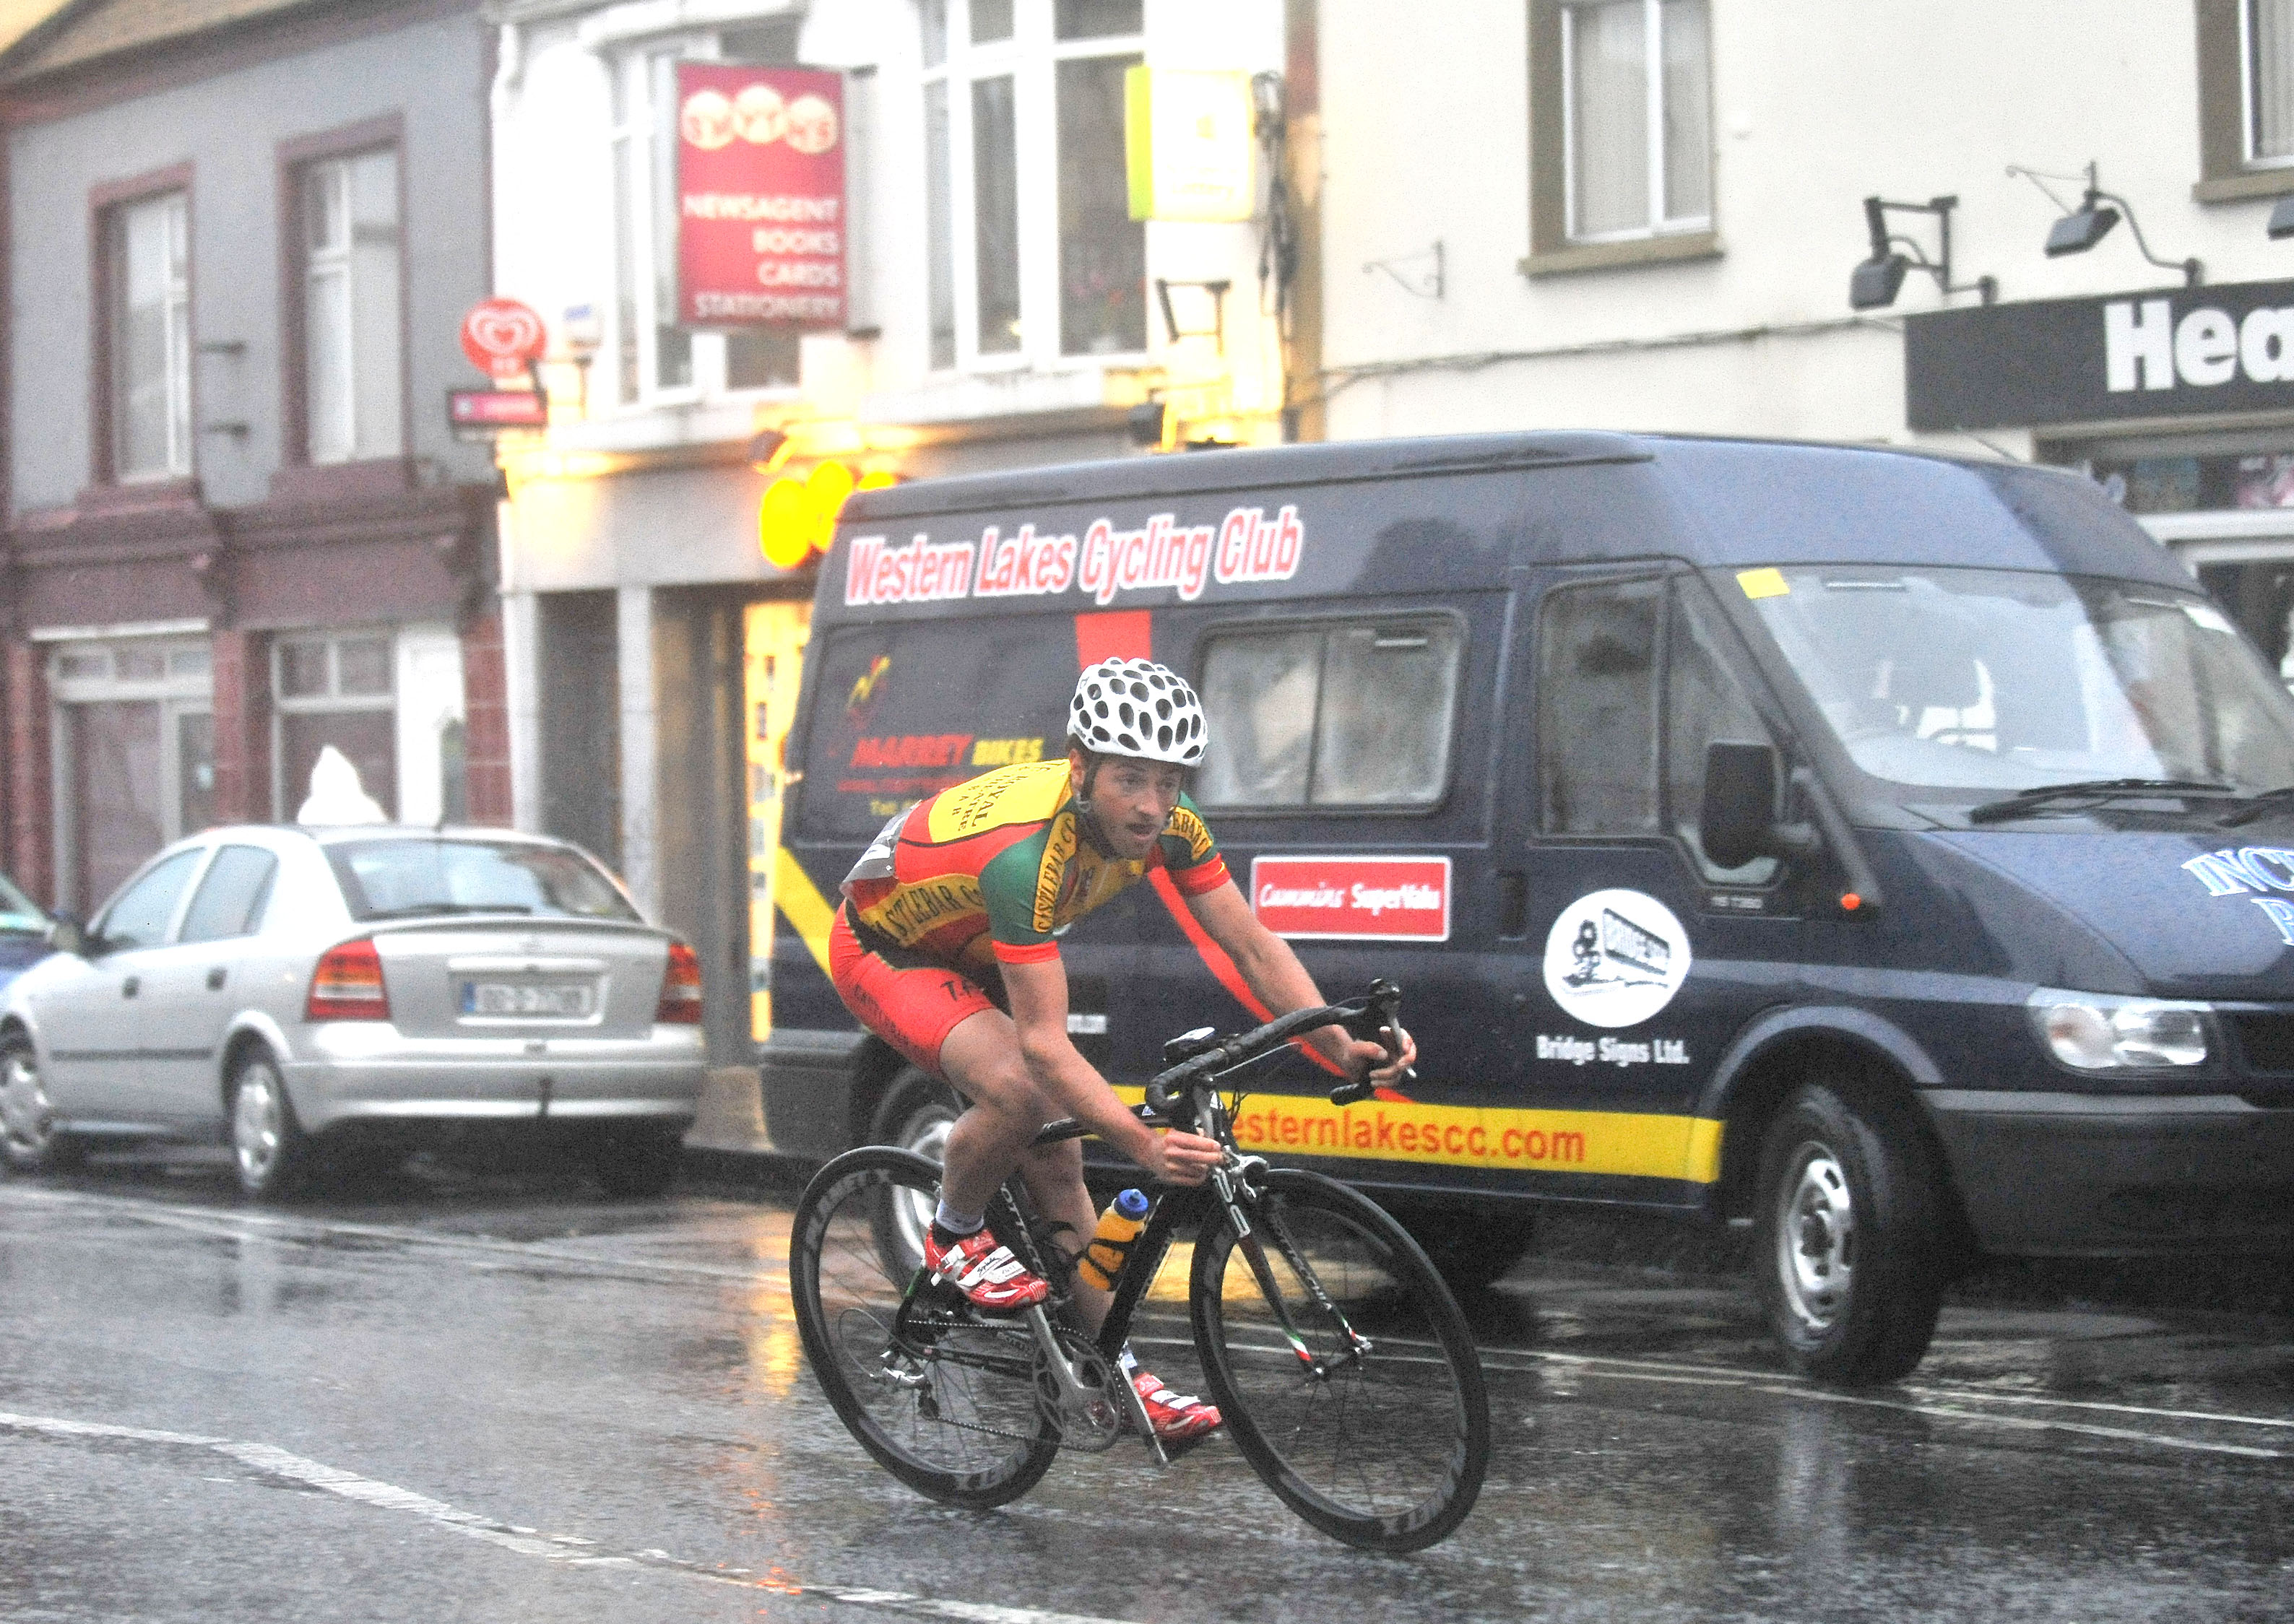 Paddy Clarke (Castlebar CC) 1st at the Claremorris Crit. Pic Co nor McKeown